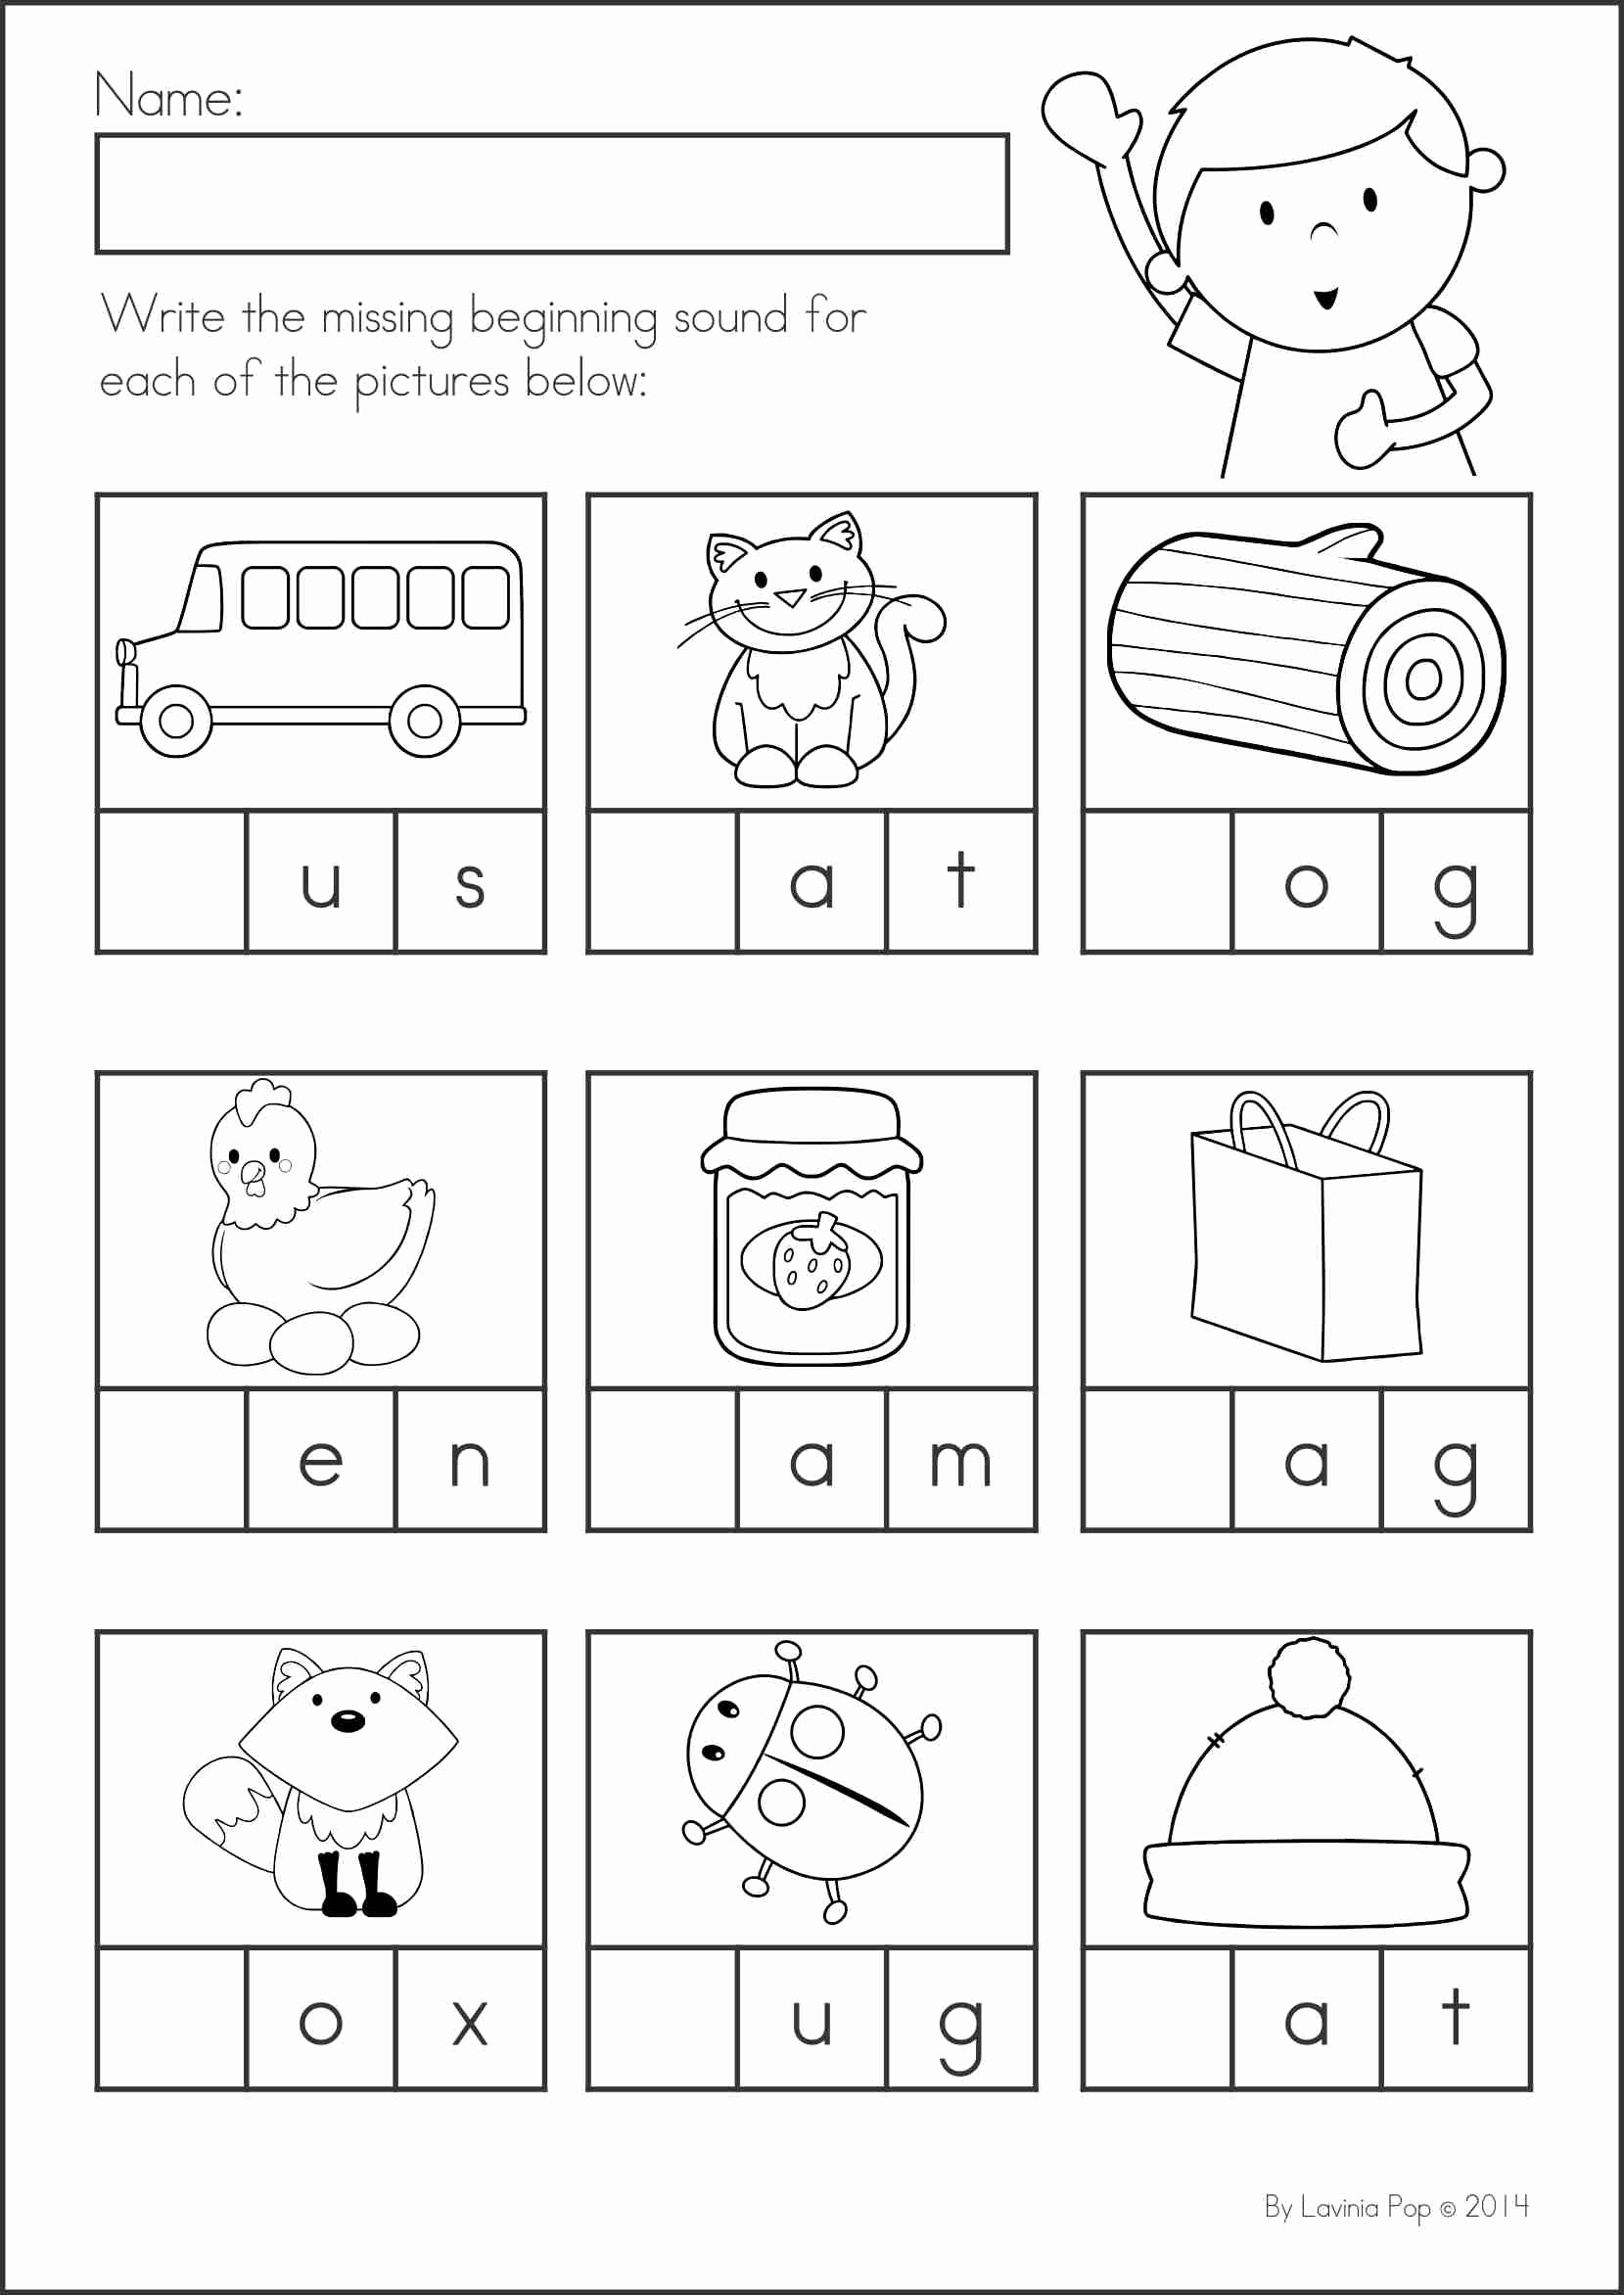 First sound Kindergarten Worksheets then Kindergarten Back to School Math & Literacy Worksheets and Activities 135 Pages A Page